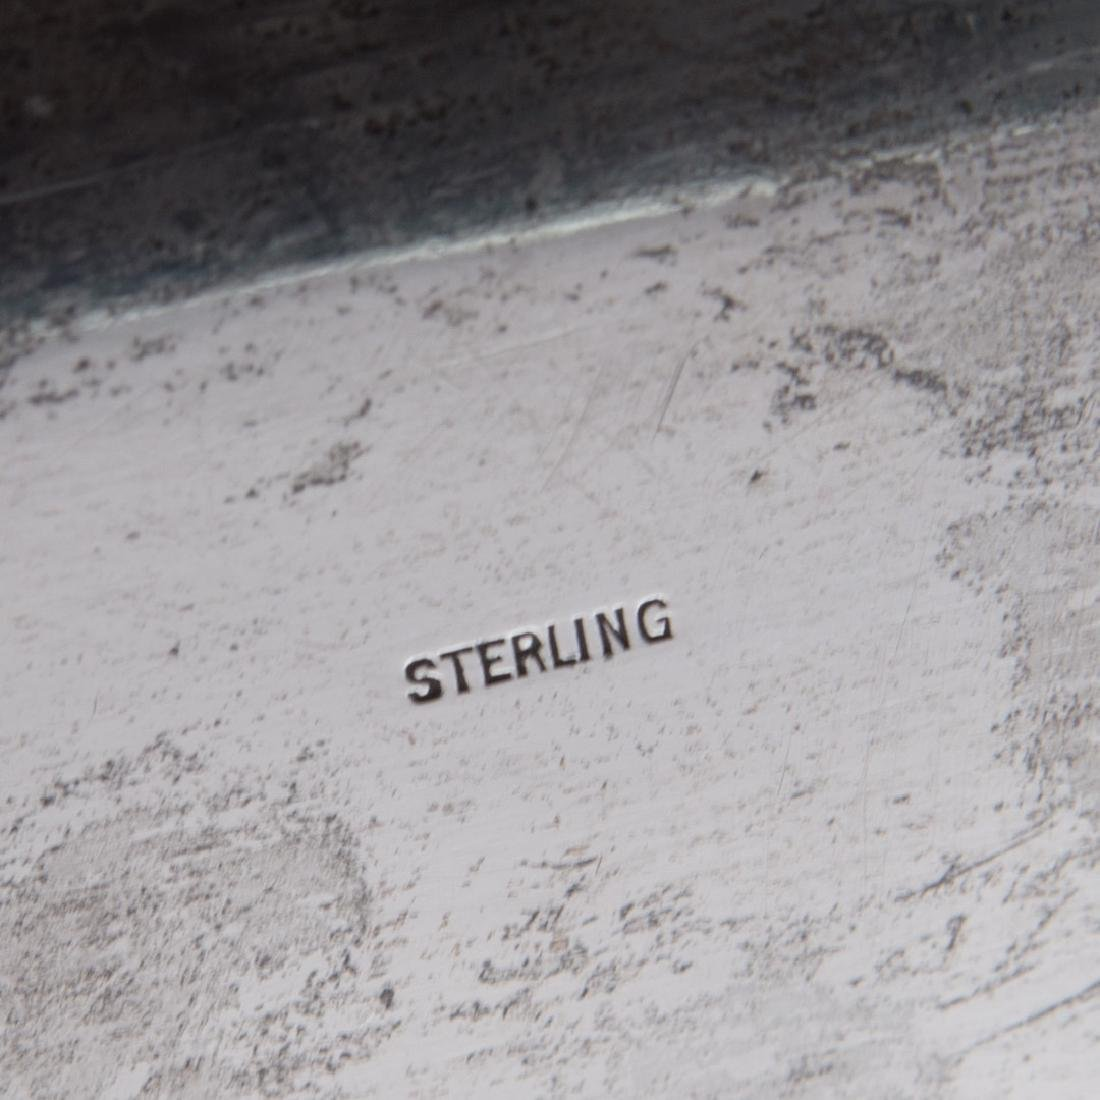 Durham sterling silver large waiter tray - 4